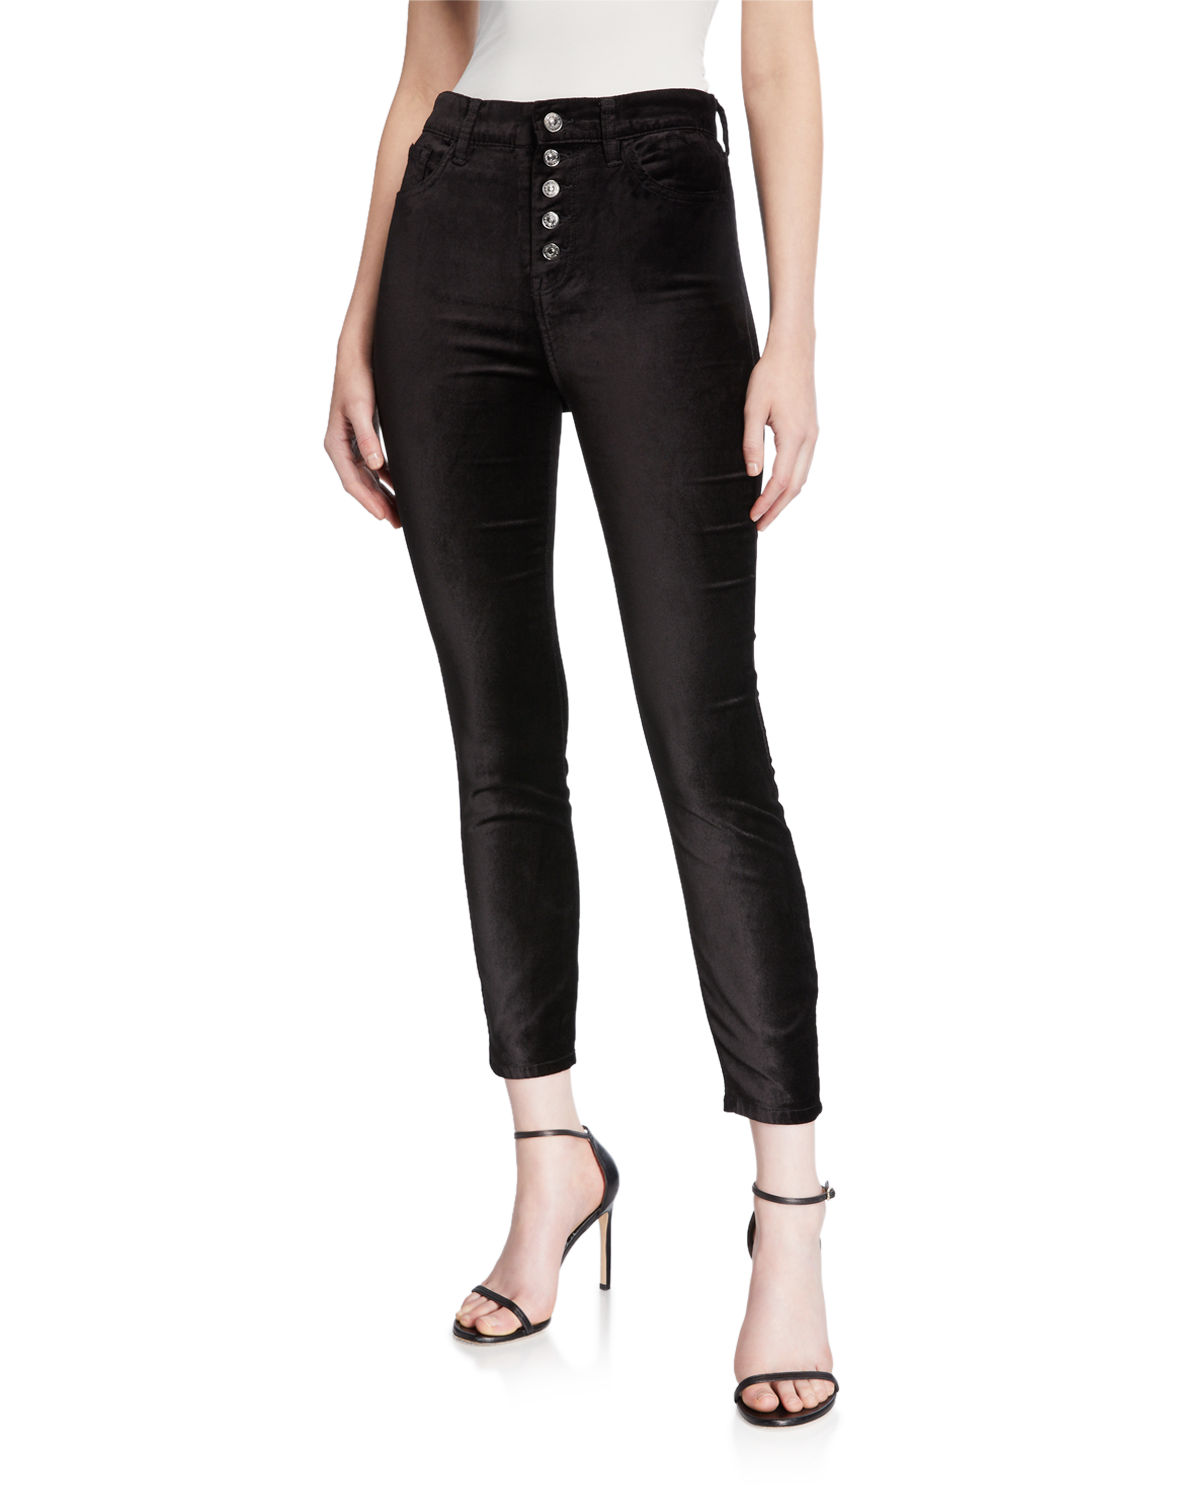 7 For All Mankind High Waist Ankle Skinny Jeans With Exposed Buttons In Black